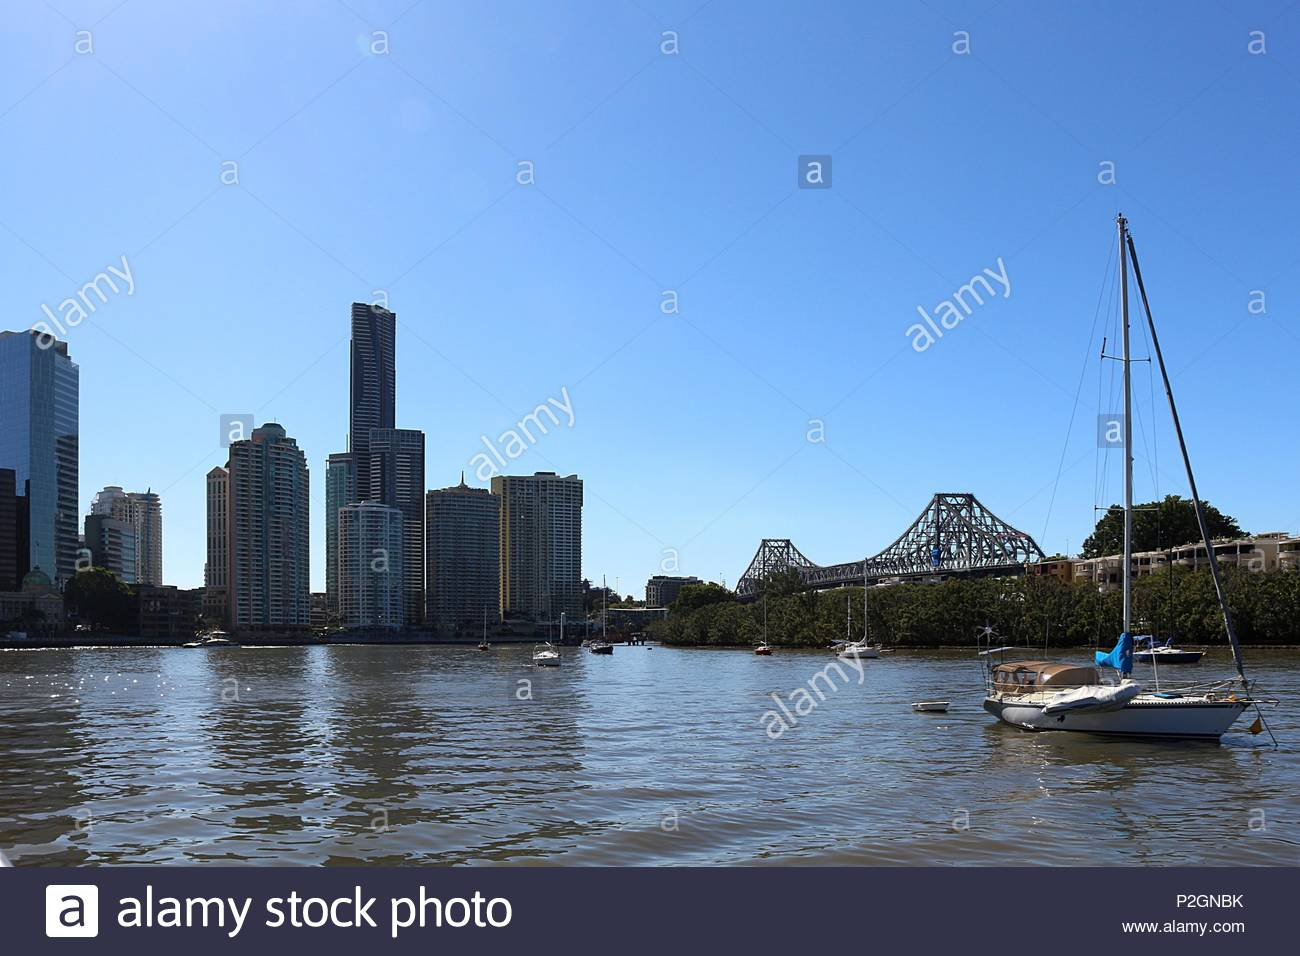 Sailing boats in front of Story Bridge and skyscrapers under blue skies in Brisbane, Australia - Stock Image